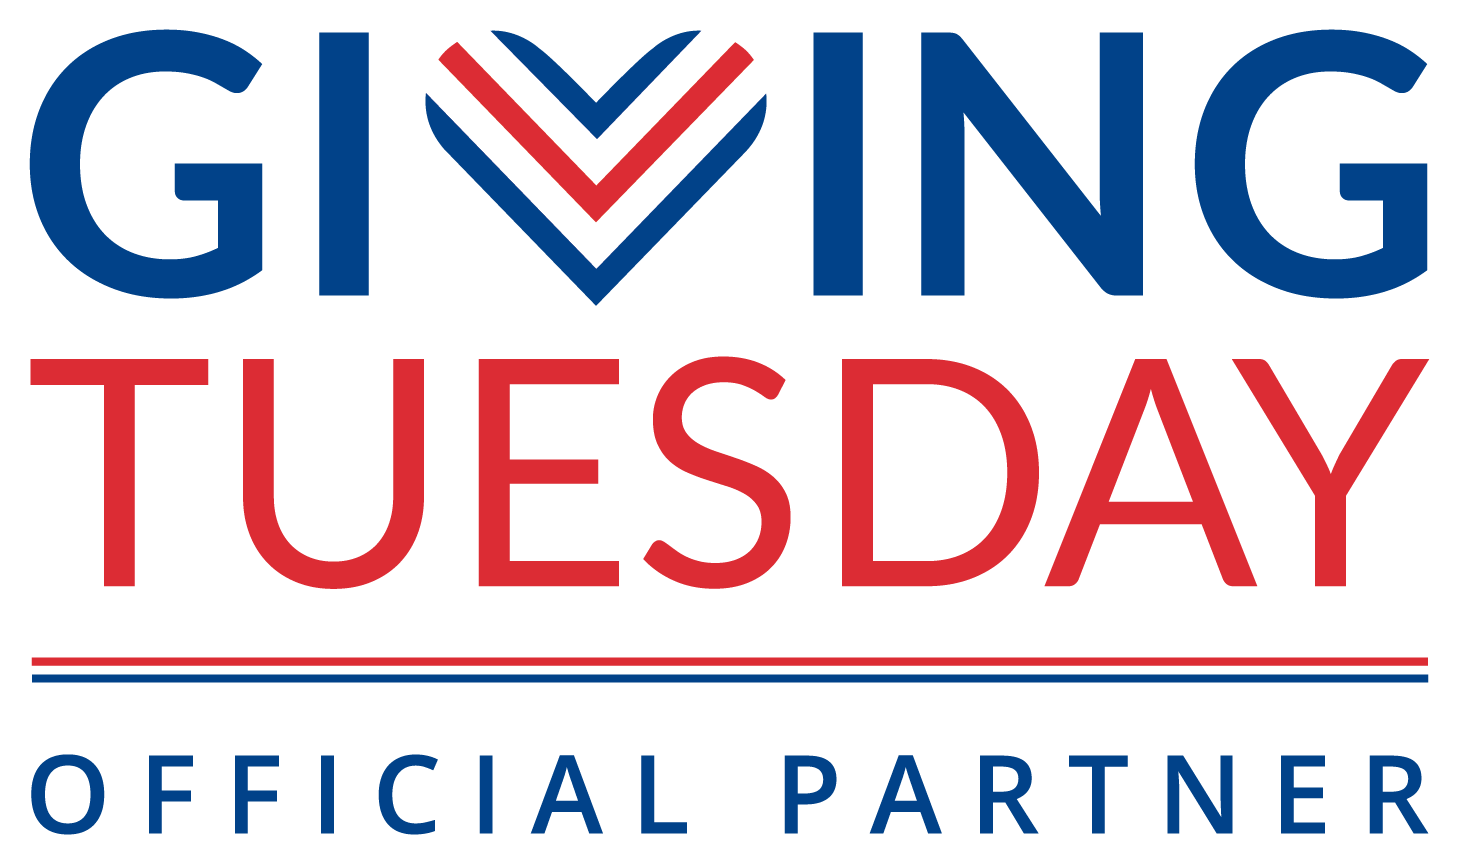 Giving Tuesday Official Partner 2019